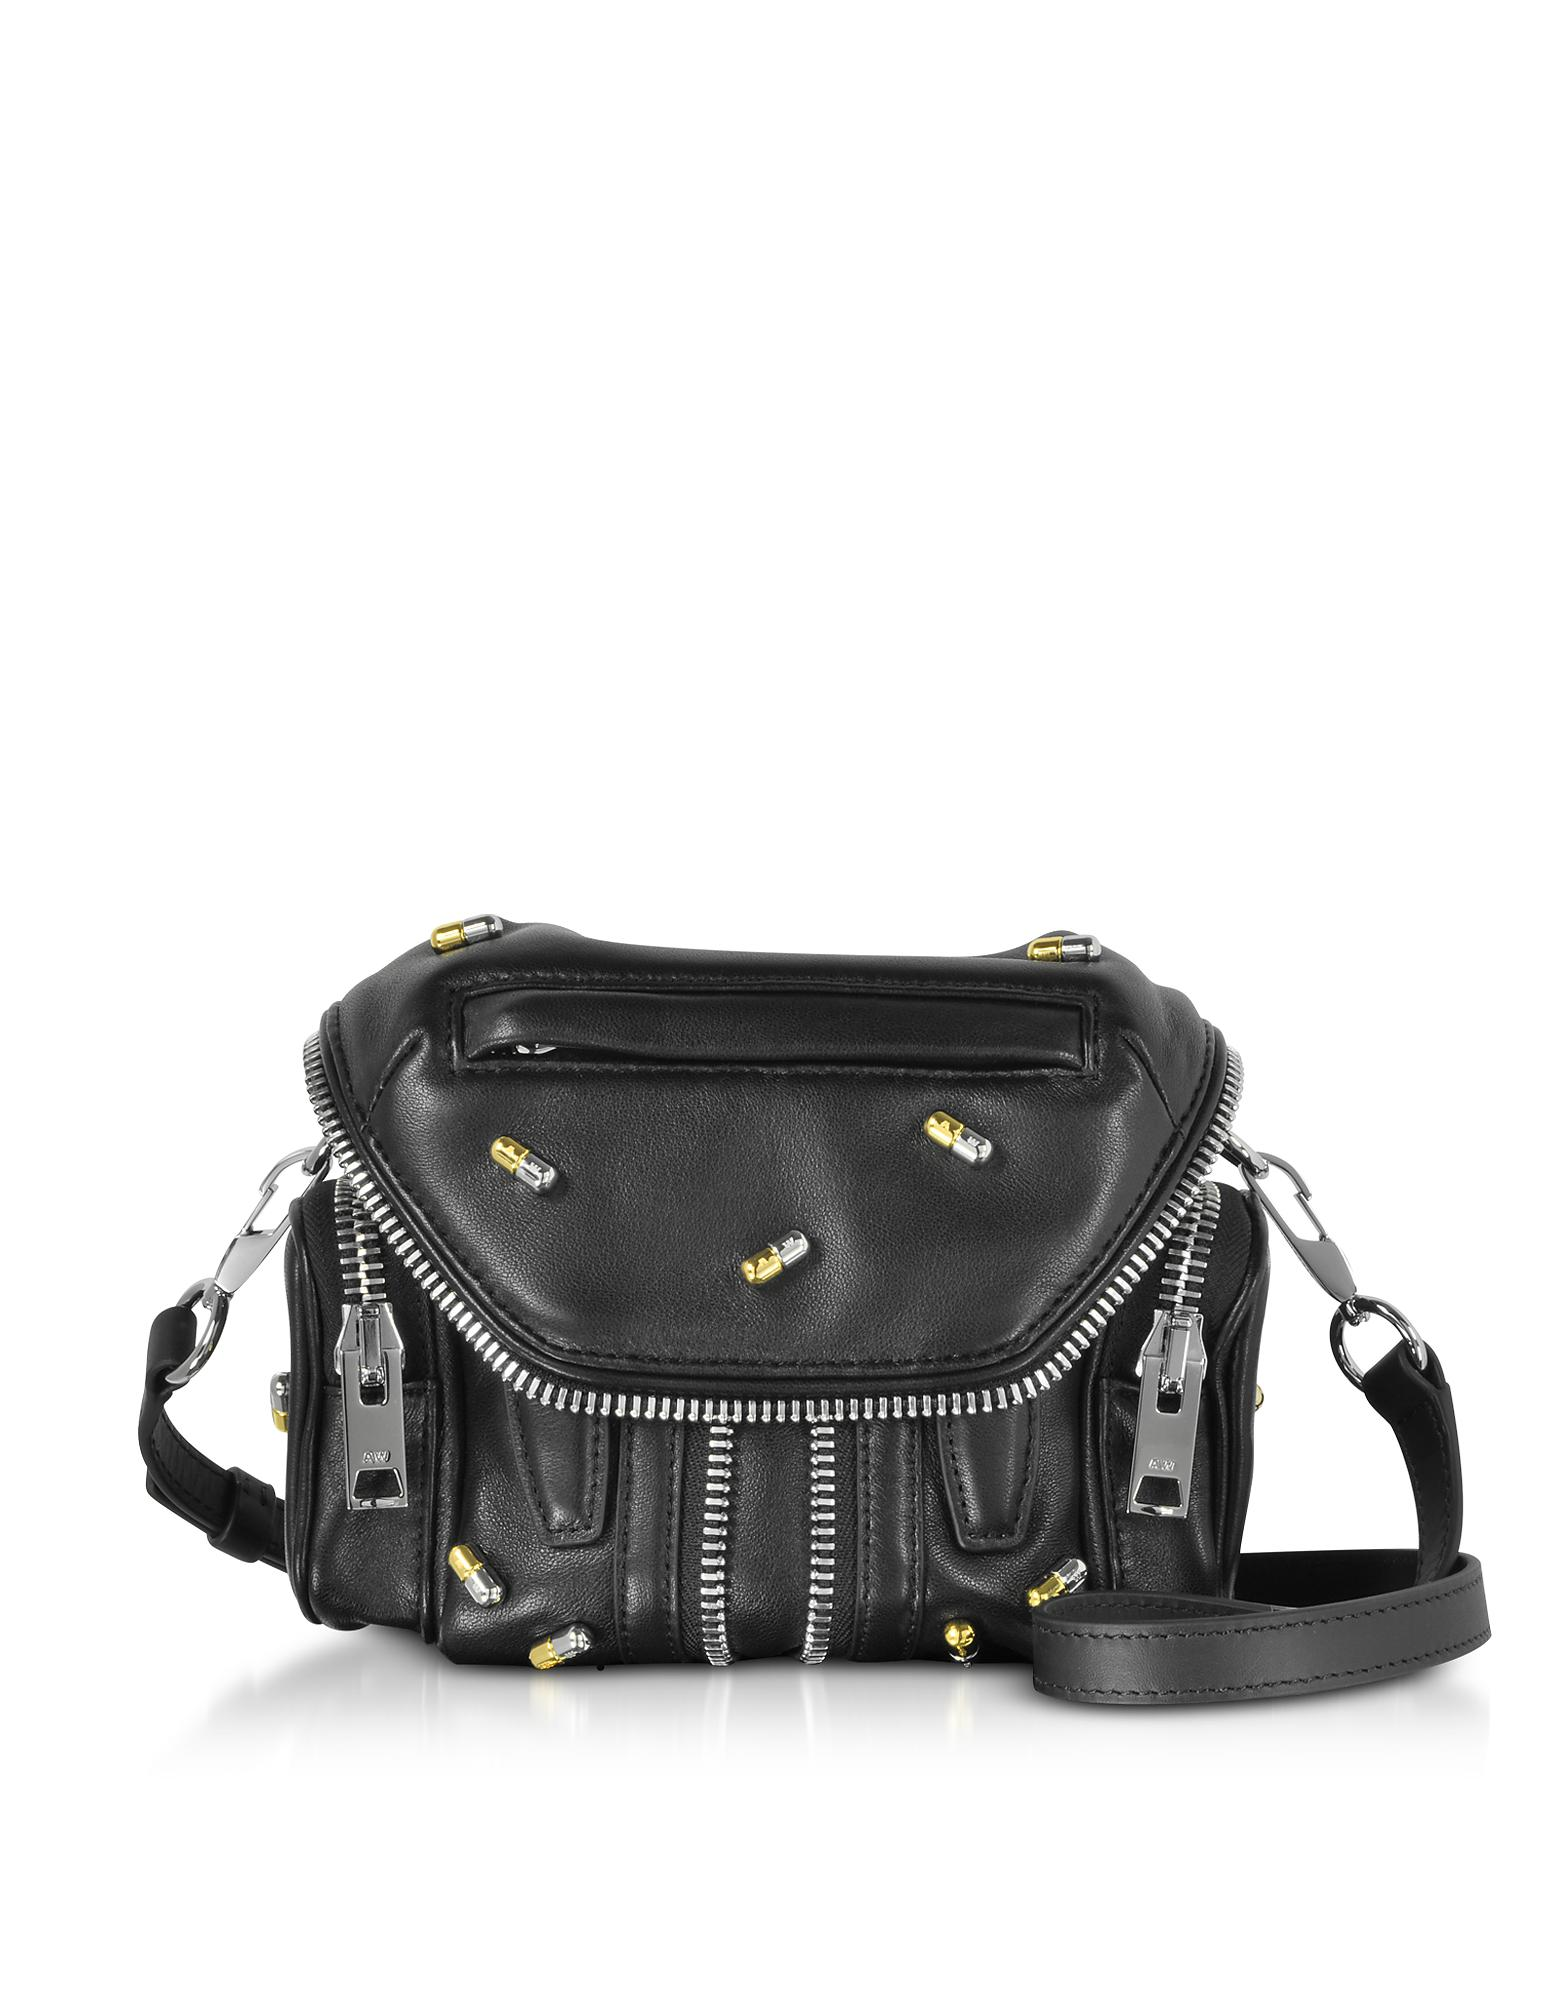 Lyst - Alexander Wang Pill Studded Micro Marti Bag in Black 6ea9b2ad968d9